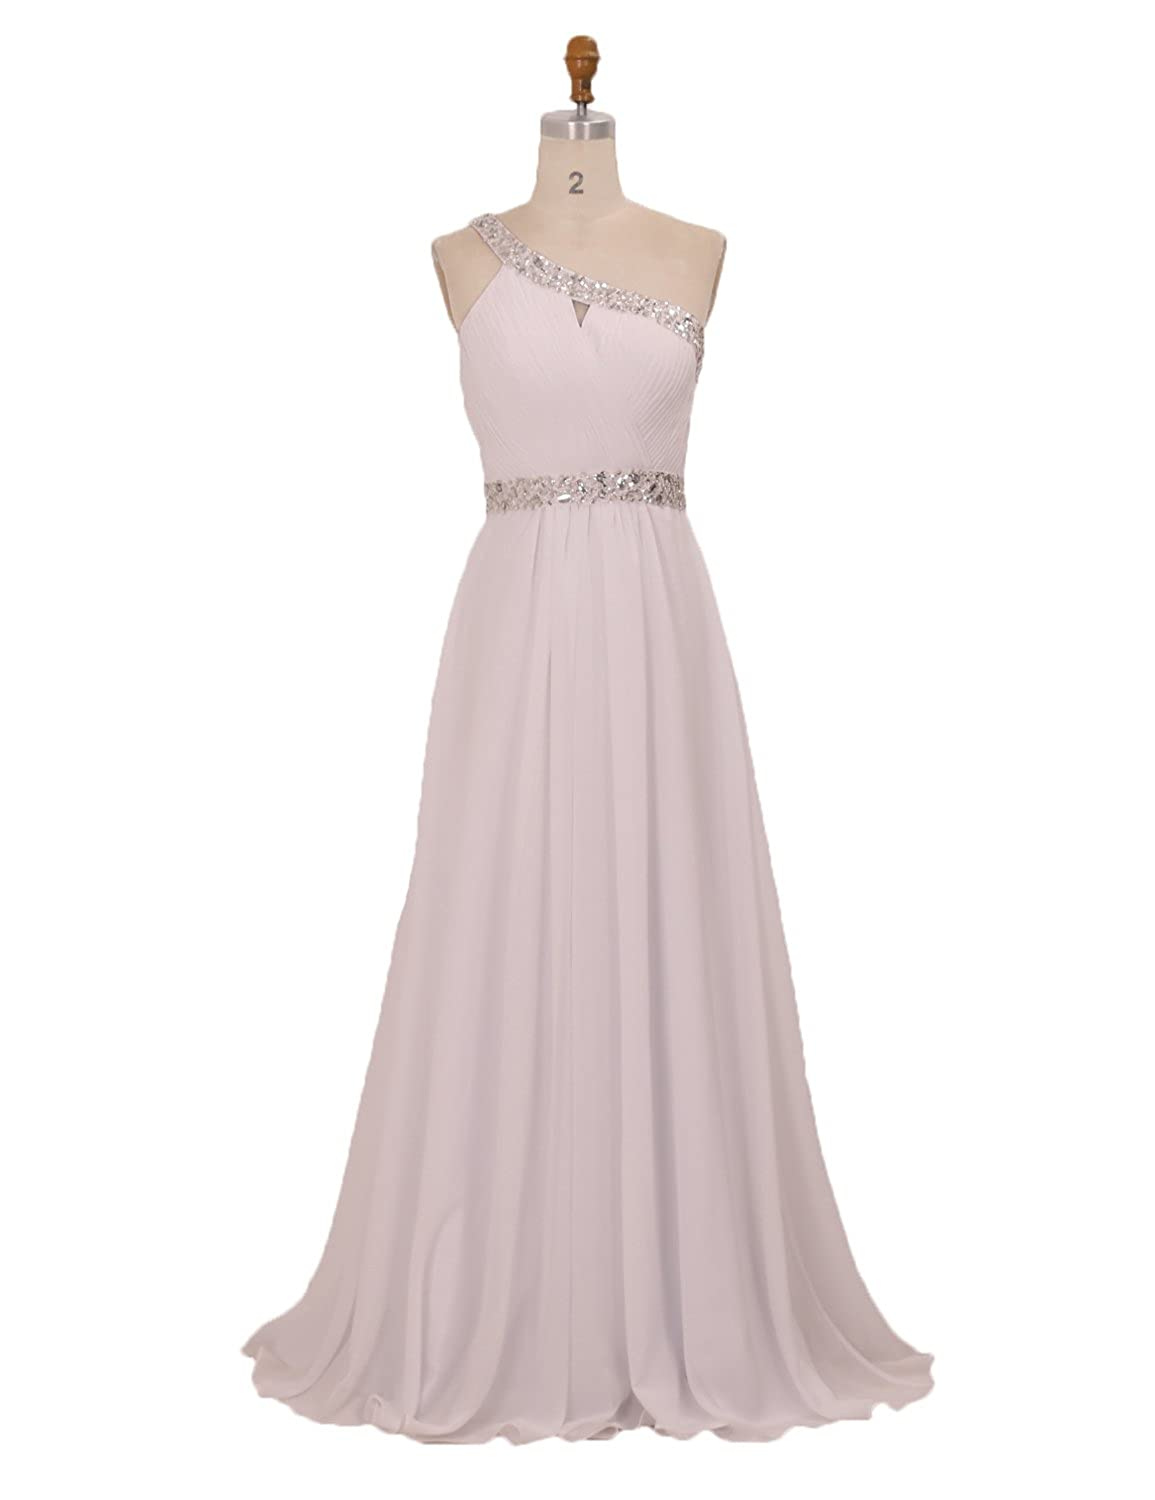 50a69f0525 One Shoulder Strap Beaded Chiffon Dresses Womens Formal Evening Gowns for  Weddings Ivory Size 16 at Amazon Women's Clothing store: